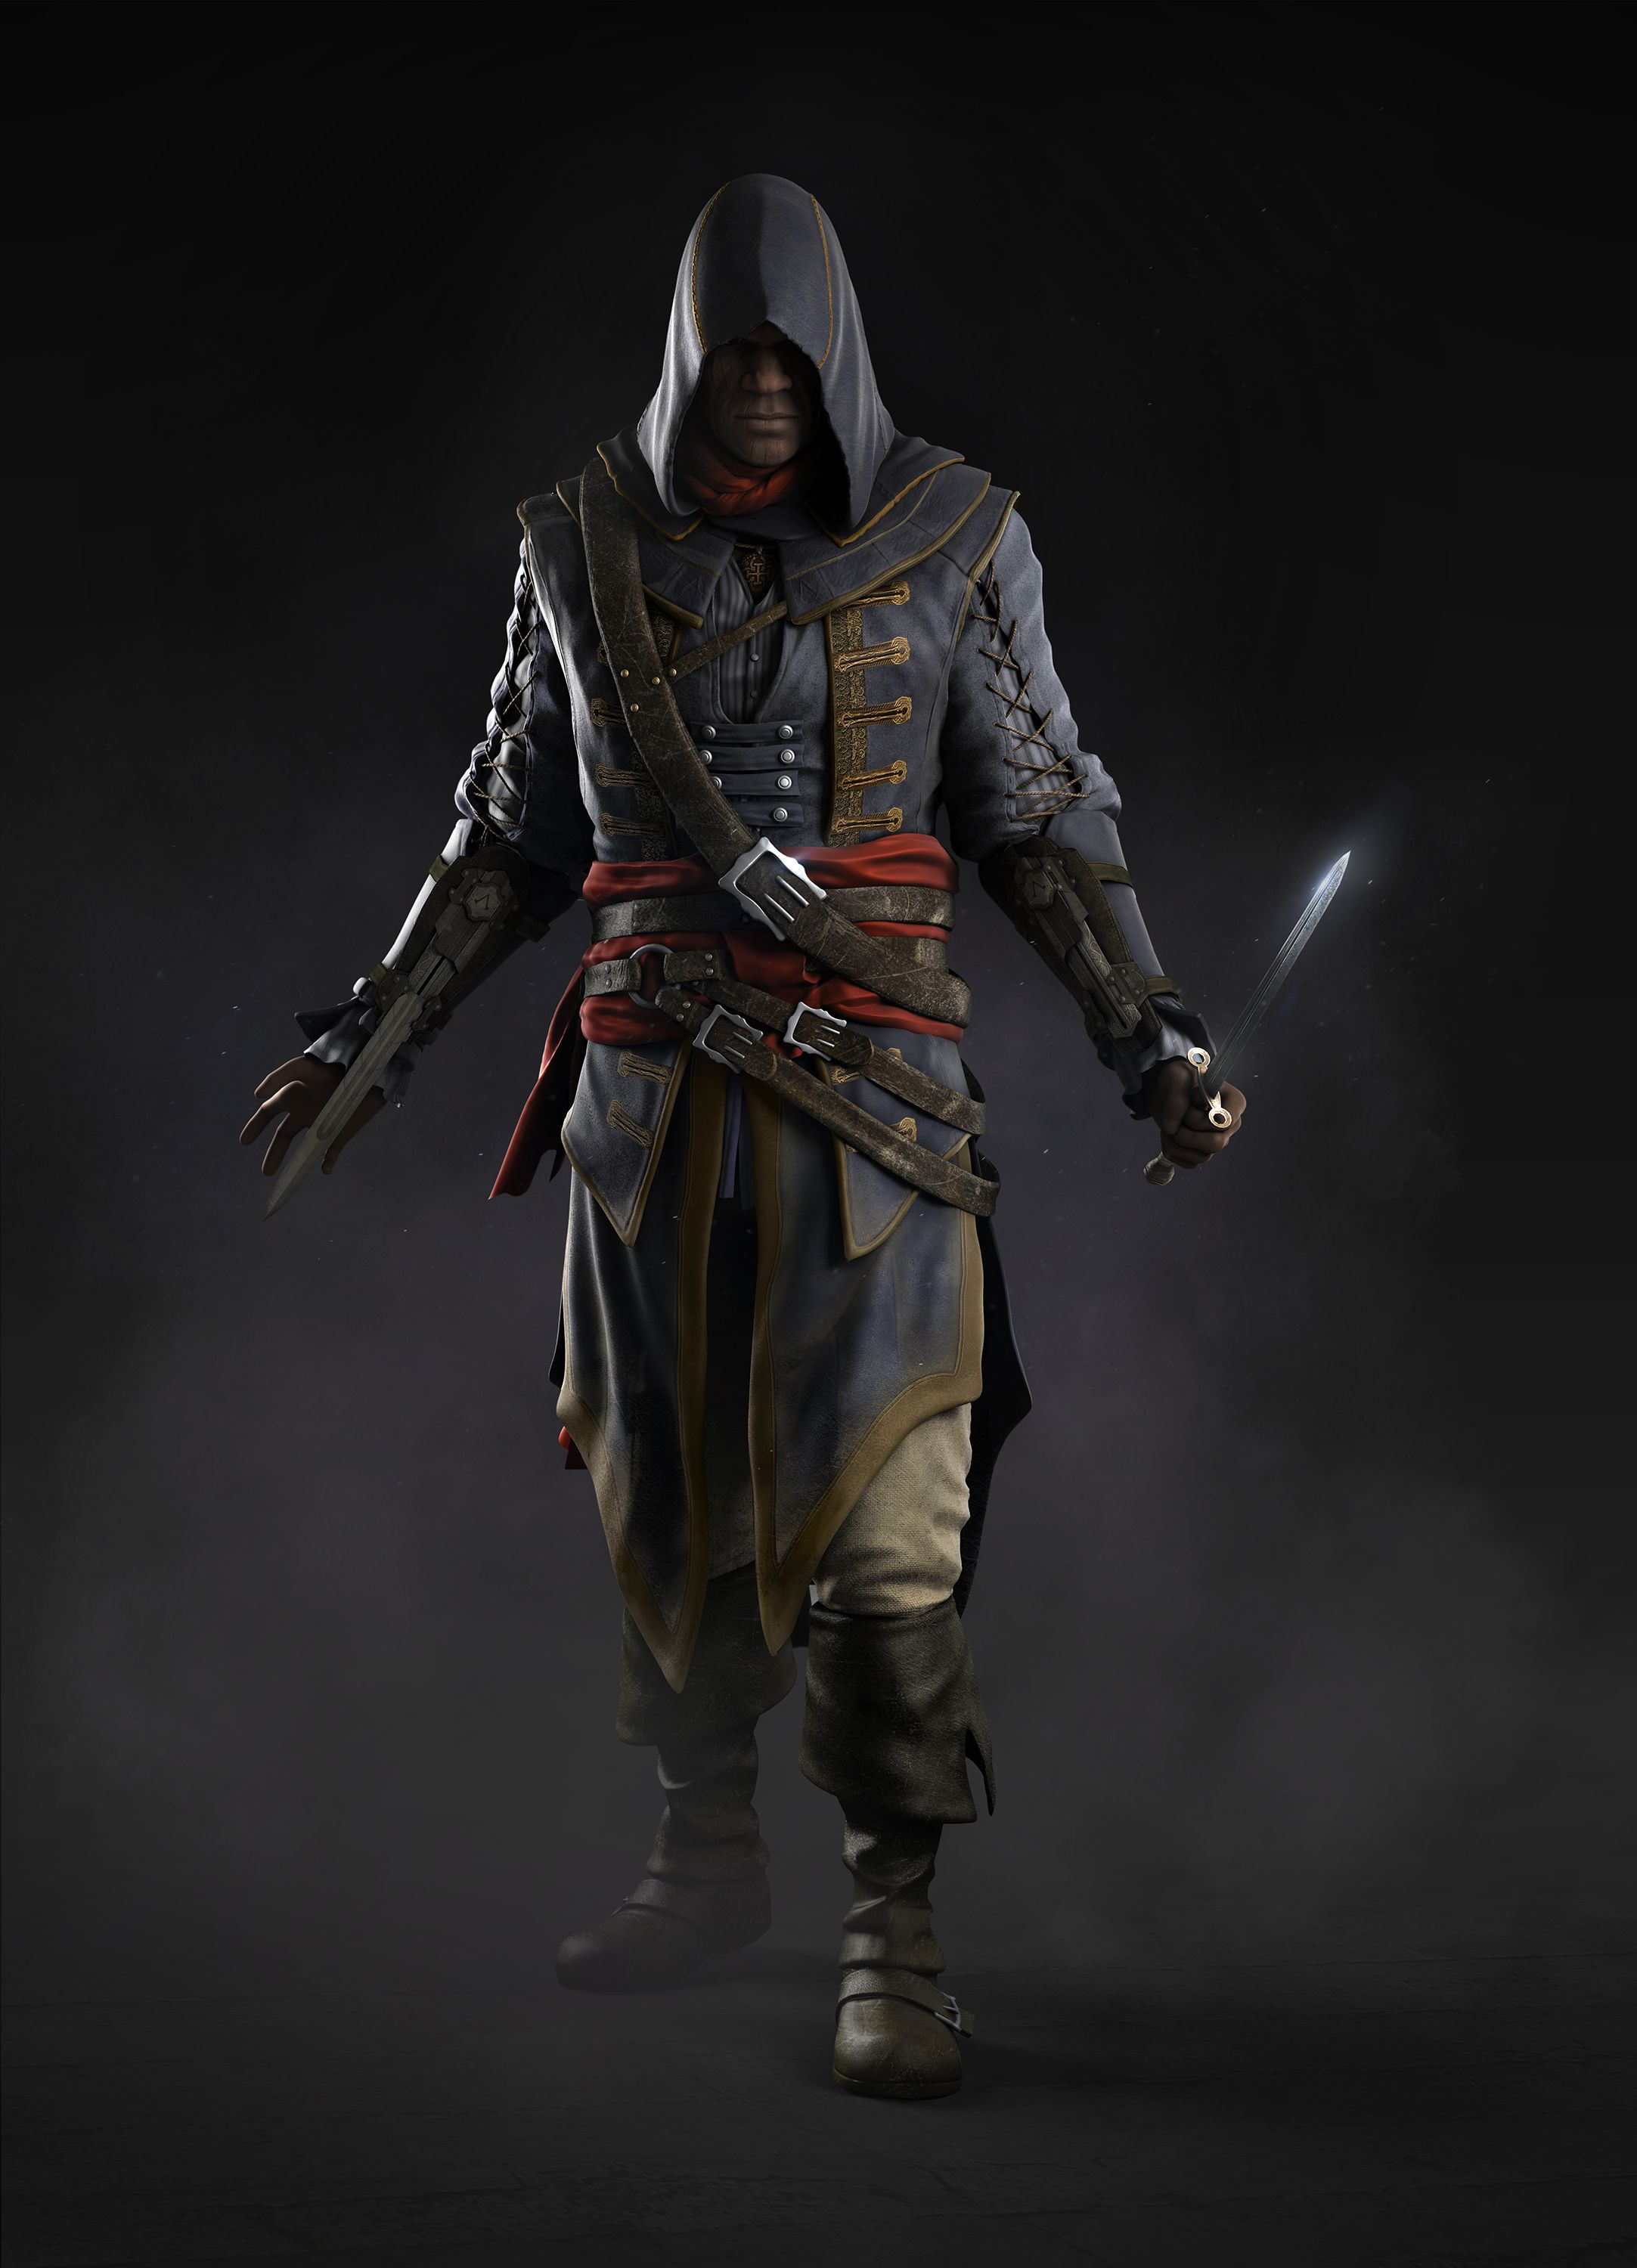 Adewale Assassin's Creed - Bing images